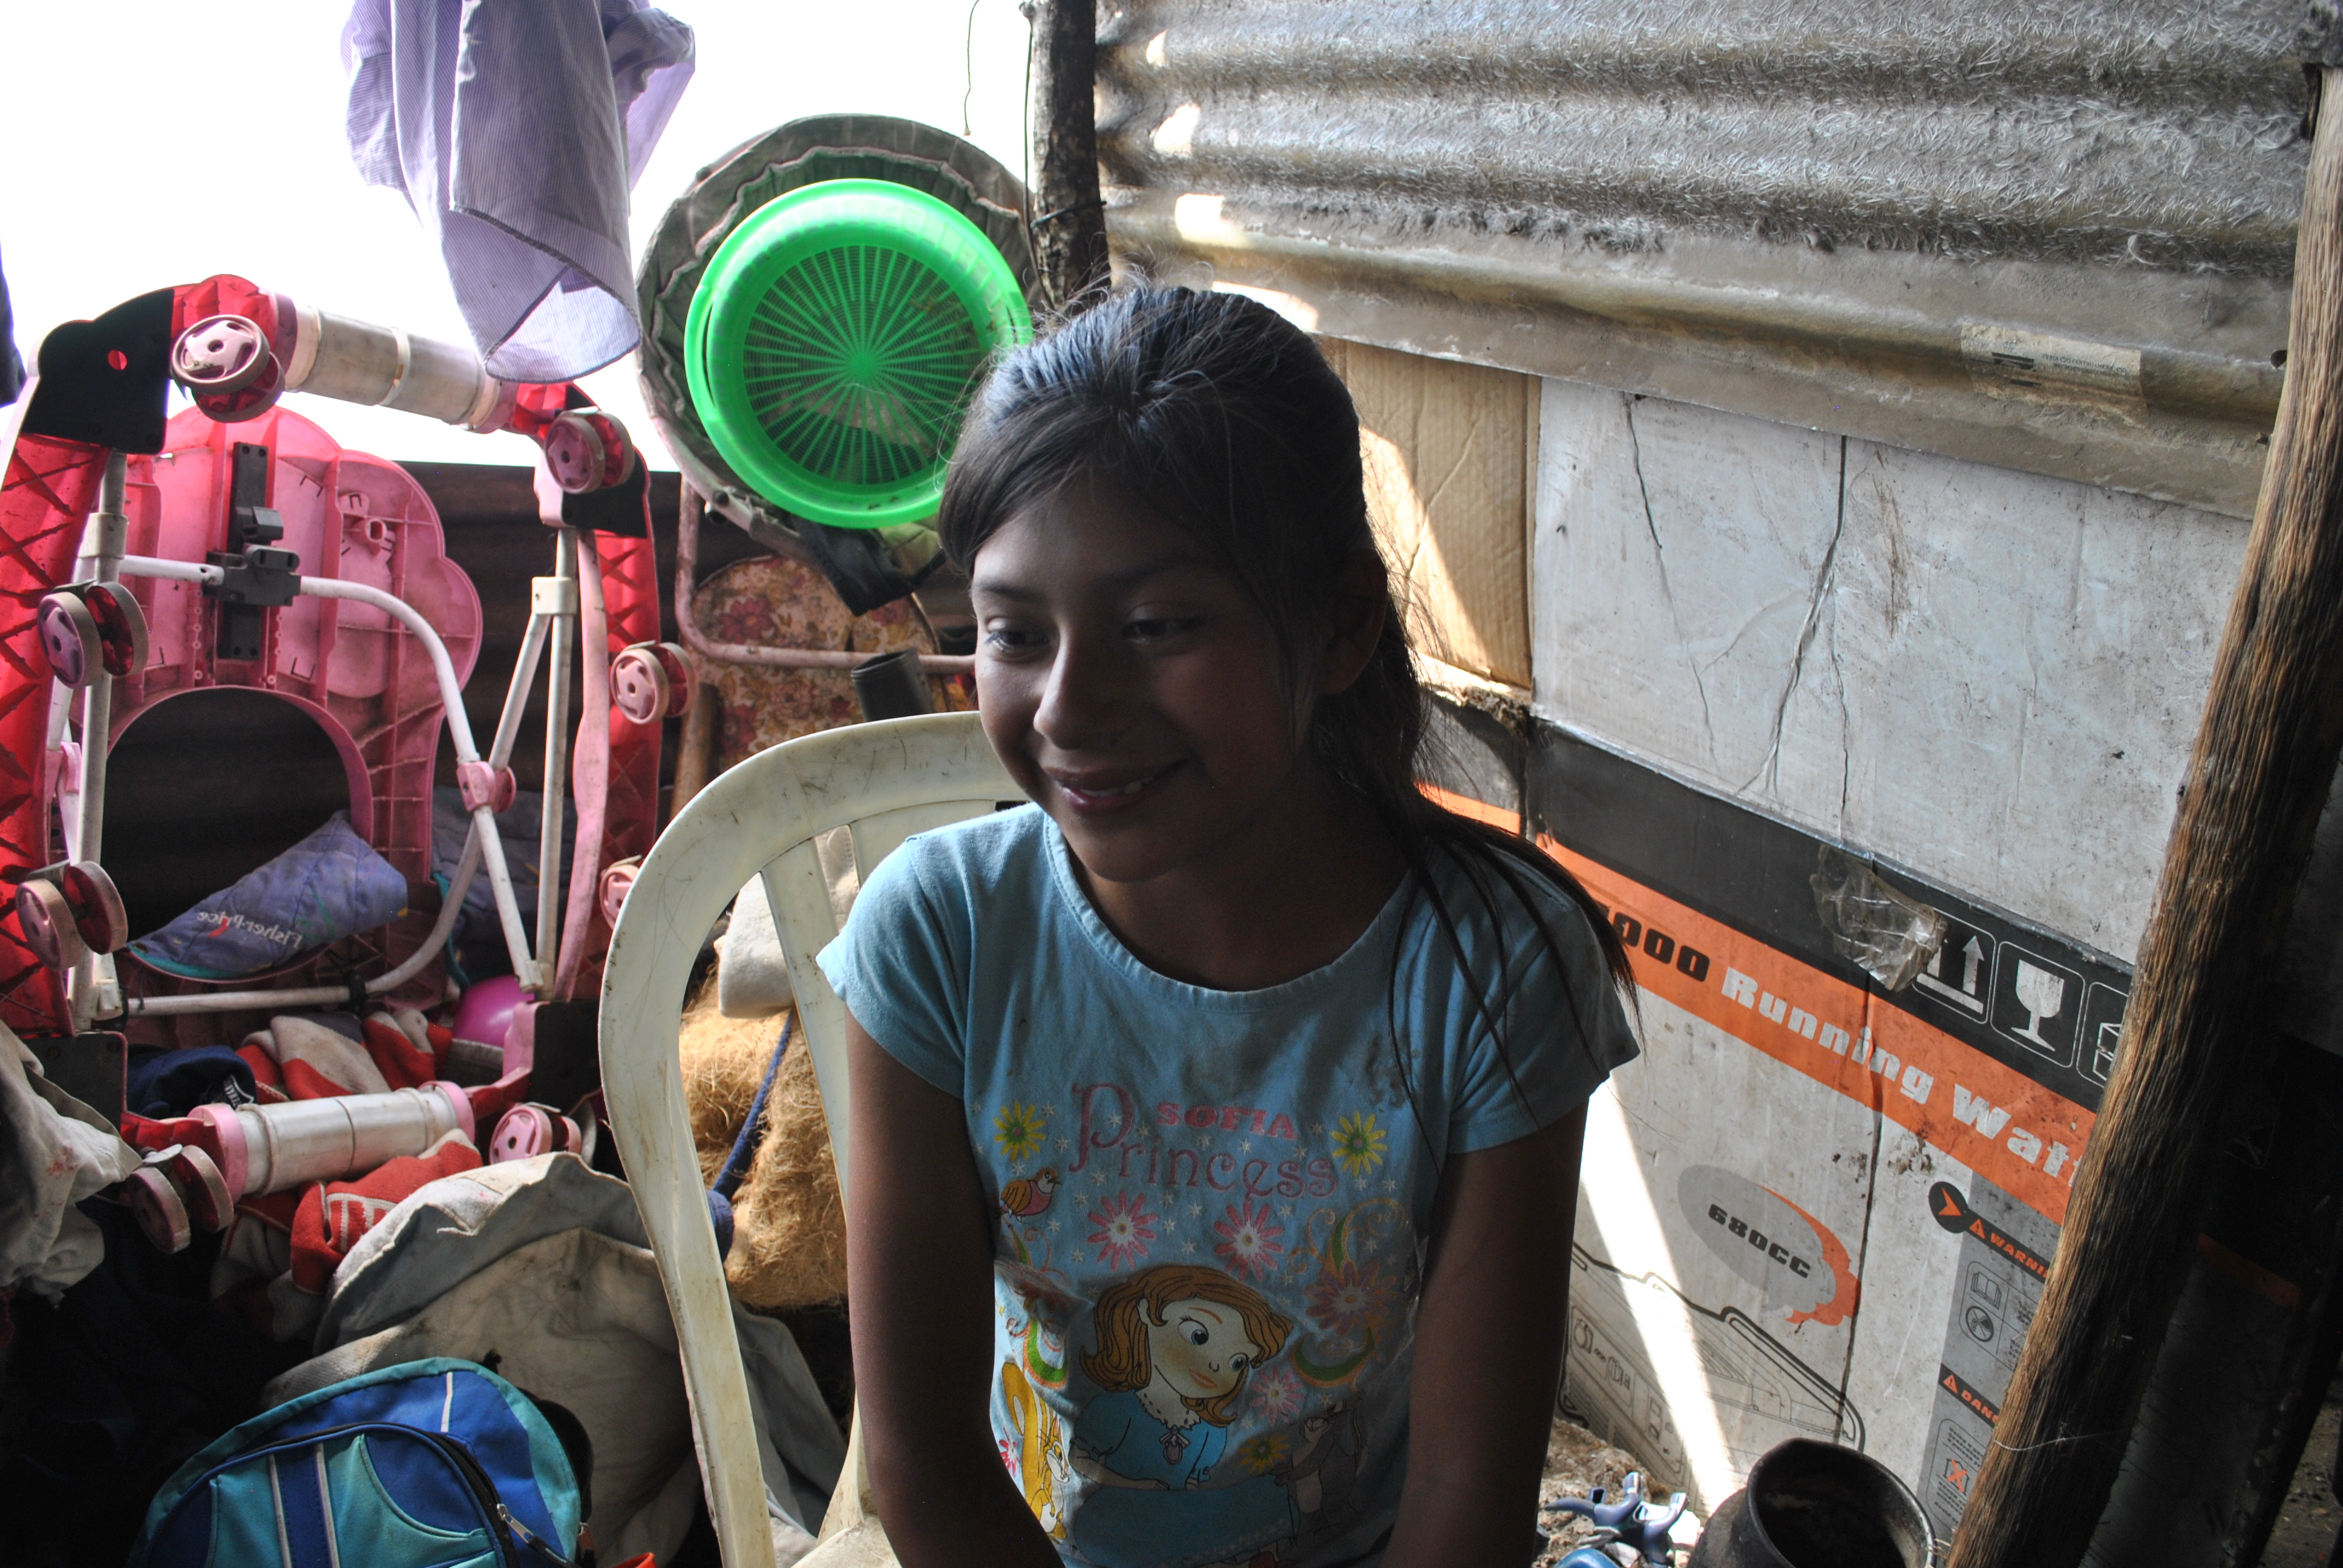 This girl can change her future if study, help us for help her to go the school.